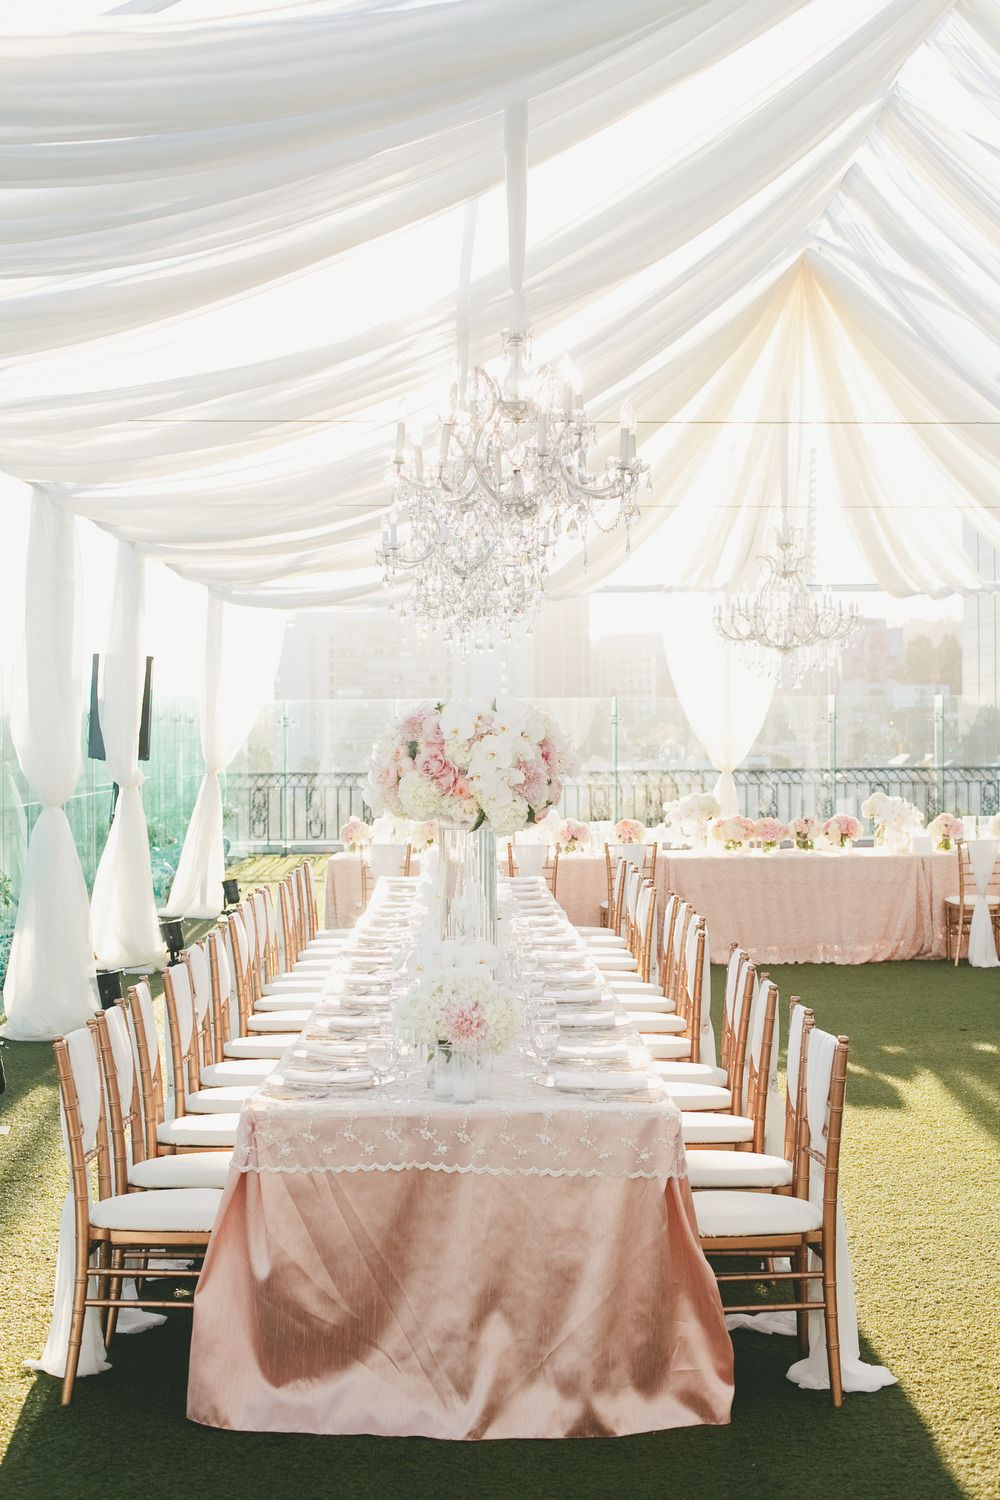 Event Decor London Pink And Gold Wedding At The London West Hollywood Receptions